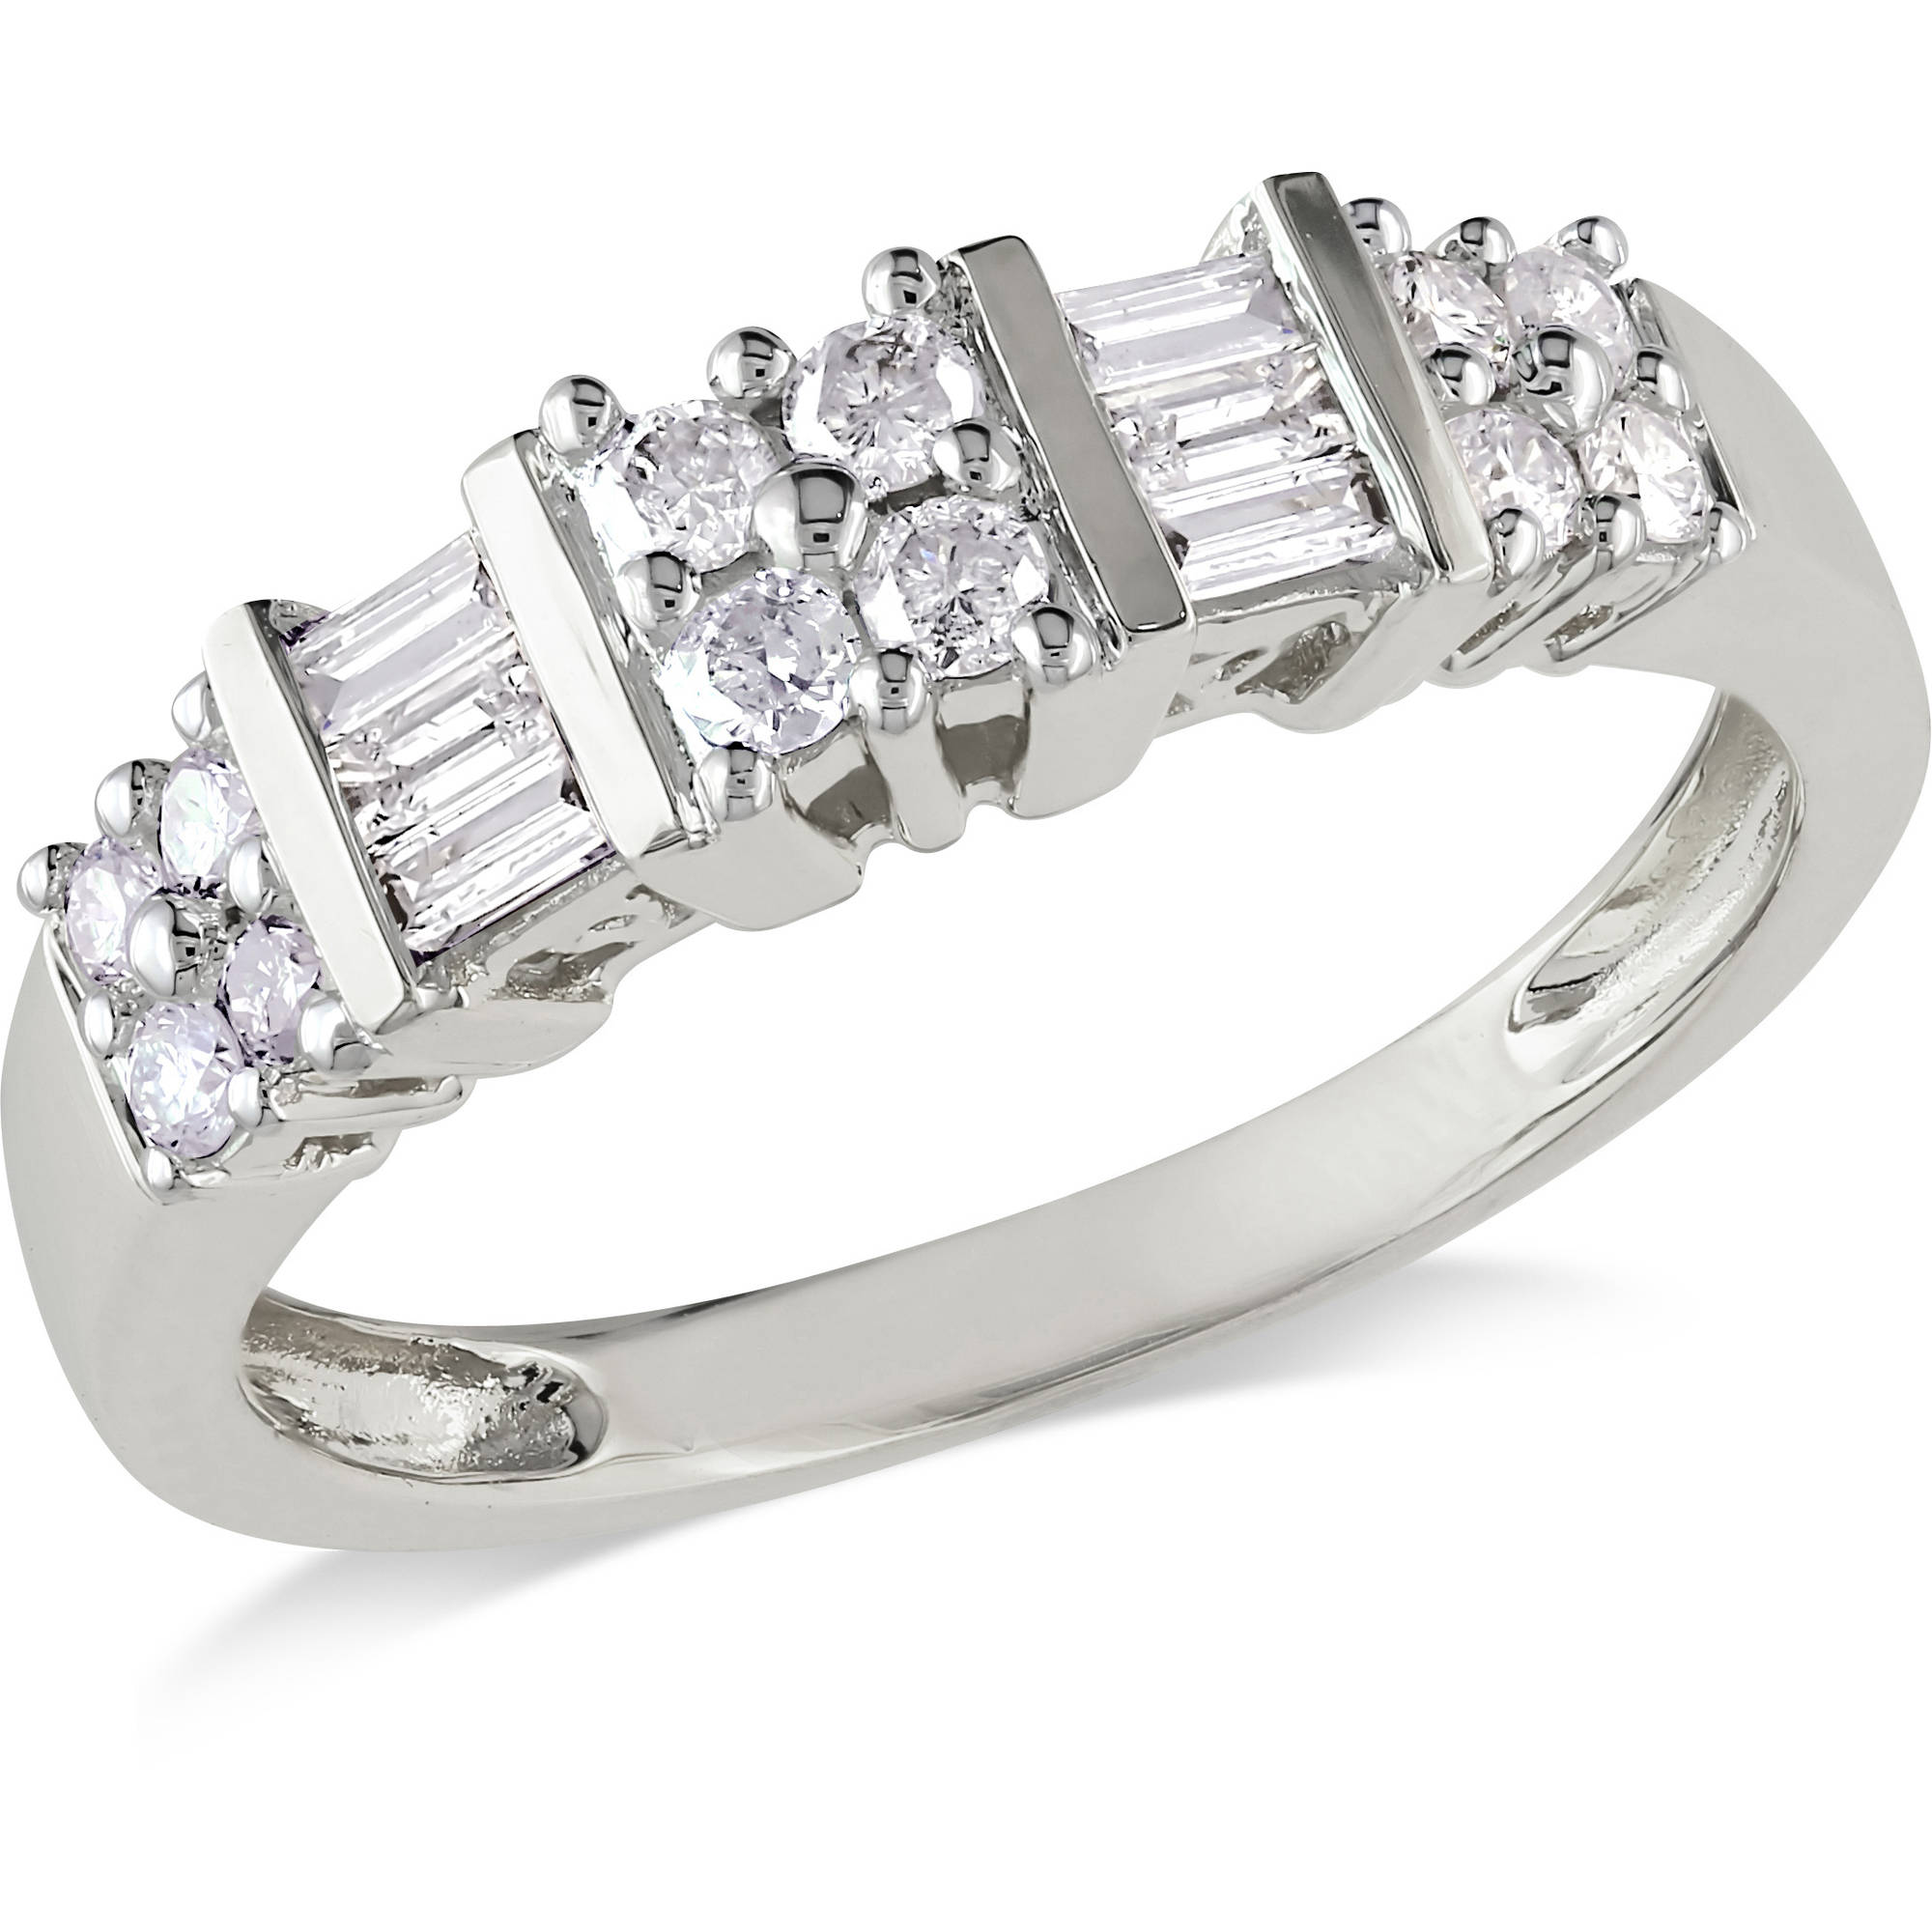 1 2 CT. T.W. Round and Baguette-Cut Diamond Wedding Band in 10kt White Gold by Delmar Manufacturing LLC